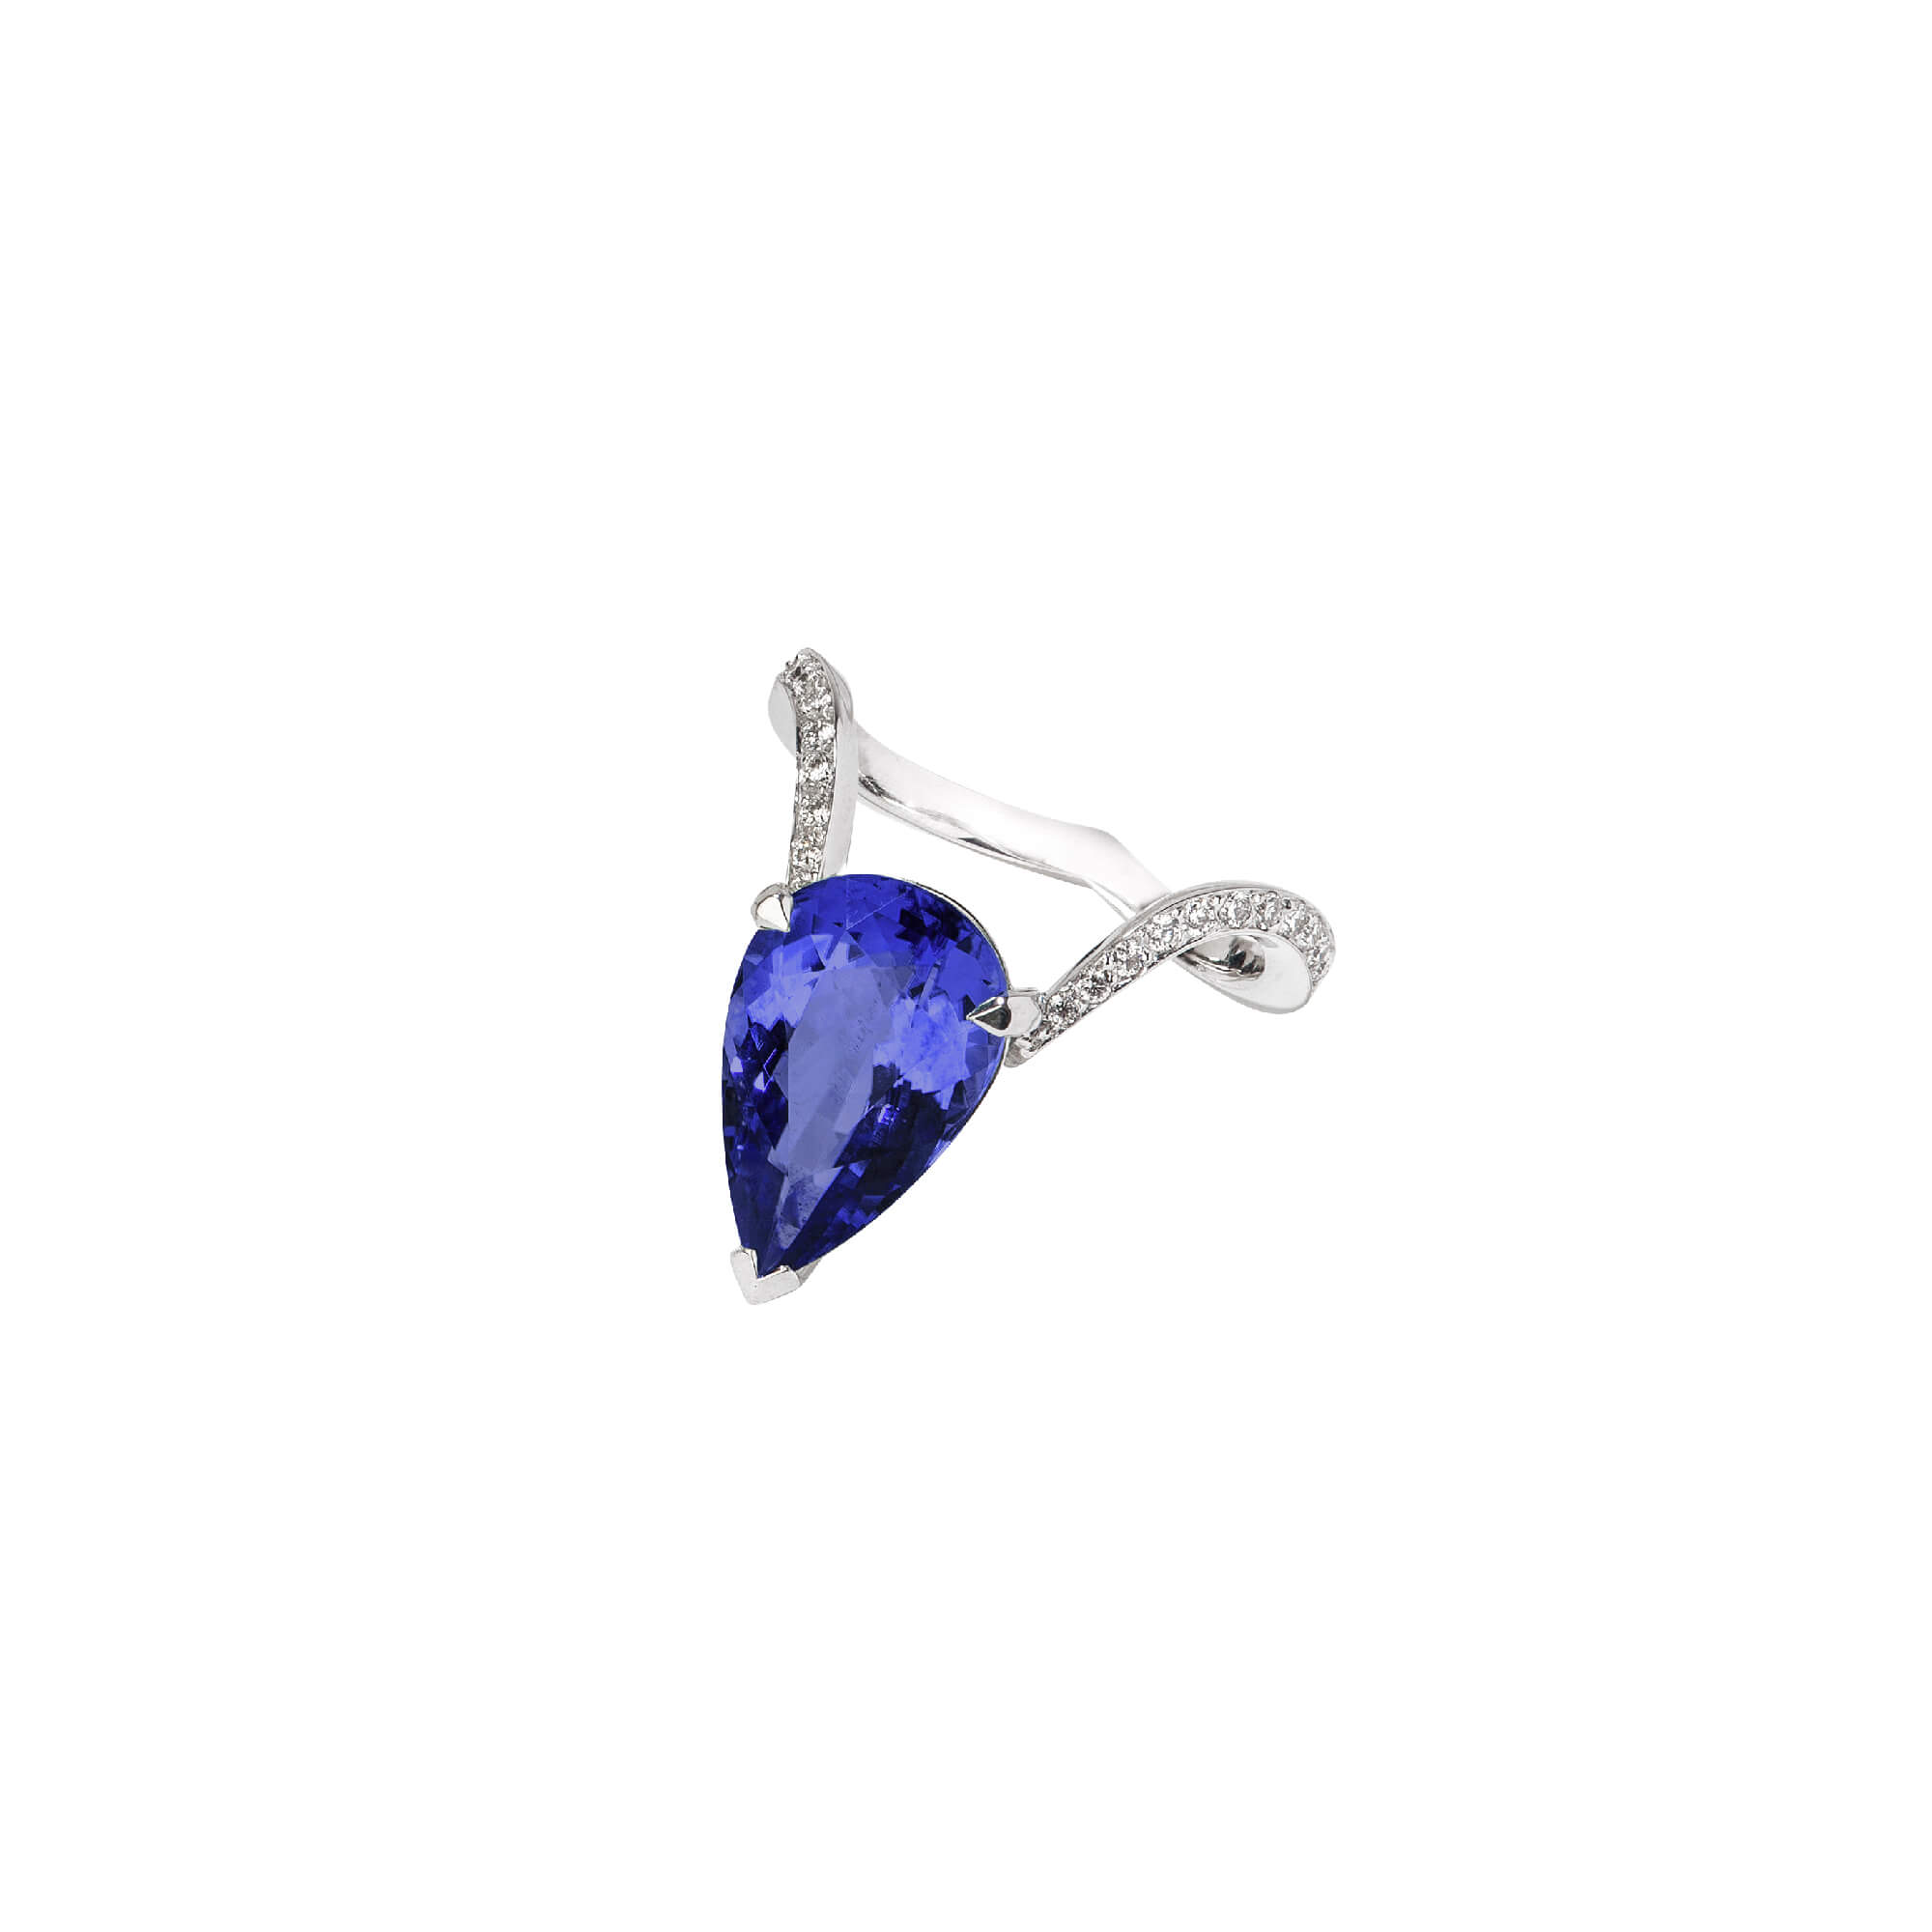 Tanzanite Diamond Cocktail Ring | Magnipheasant